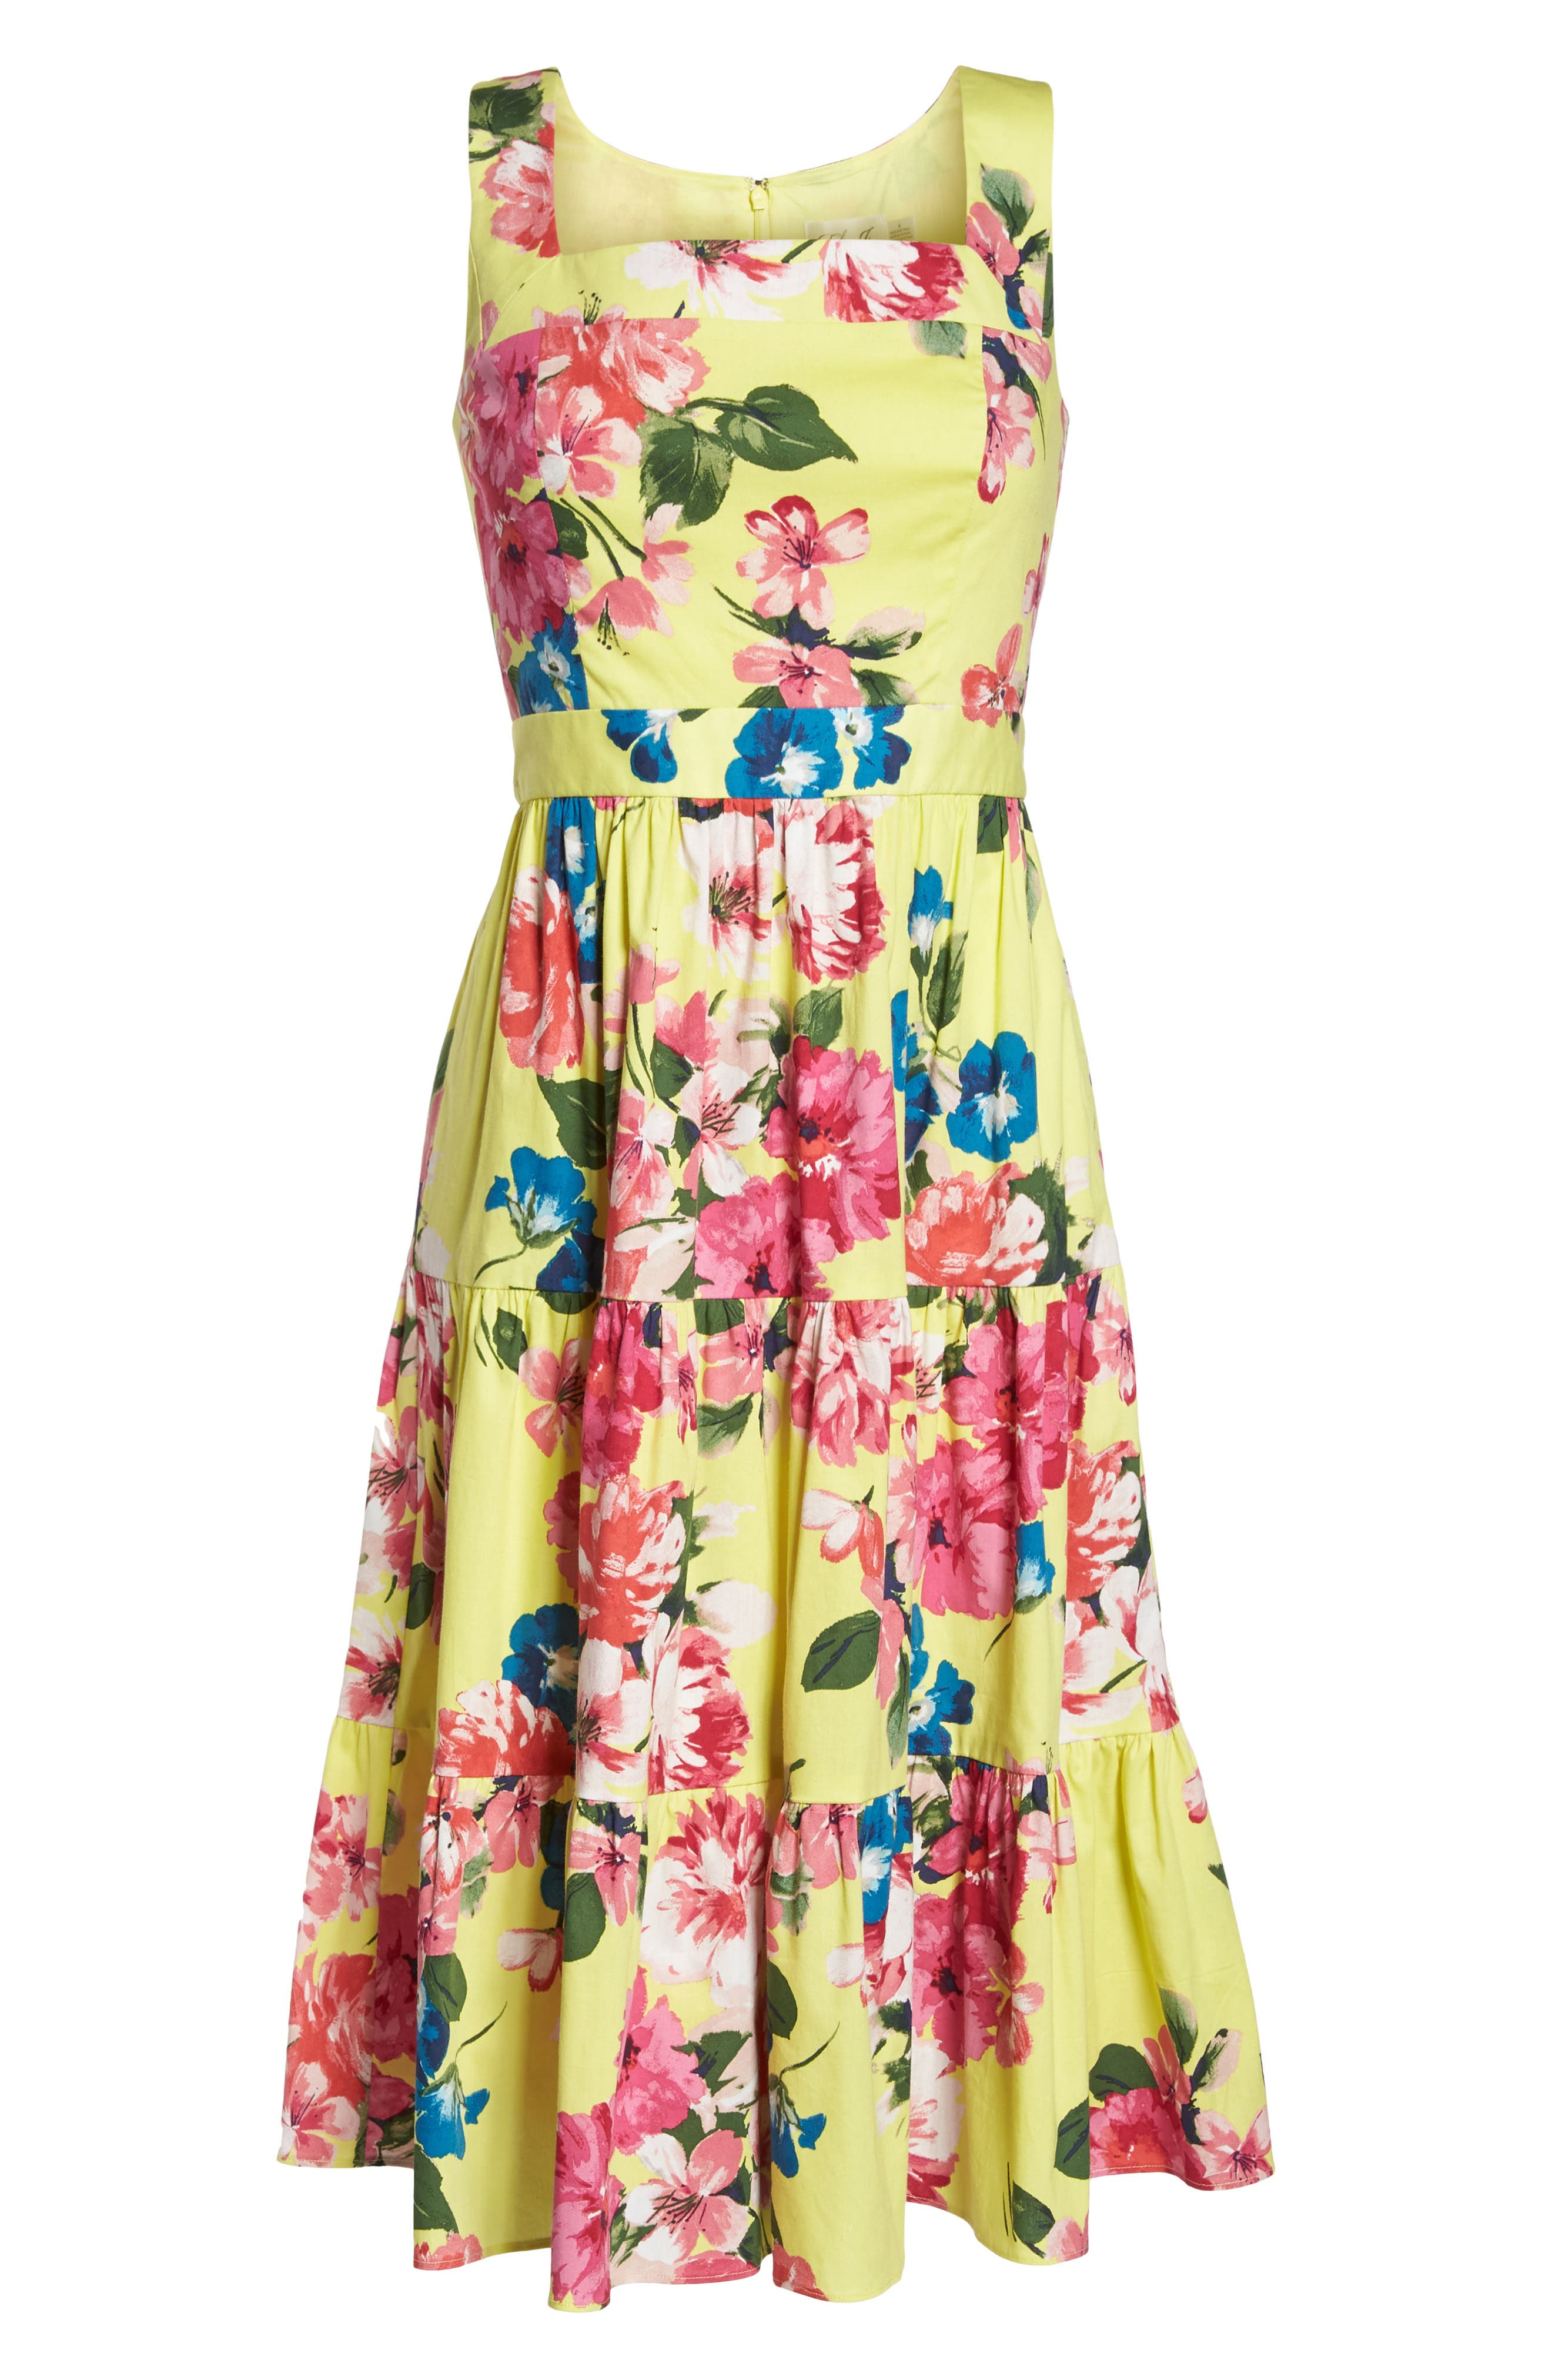 Square Neck Floral Tiered Fit & Flare Midi Dress,                             Alternate thumbnail 7, color,                             720